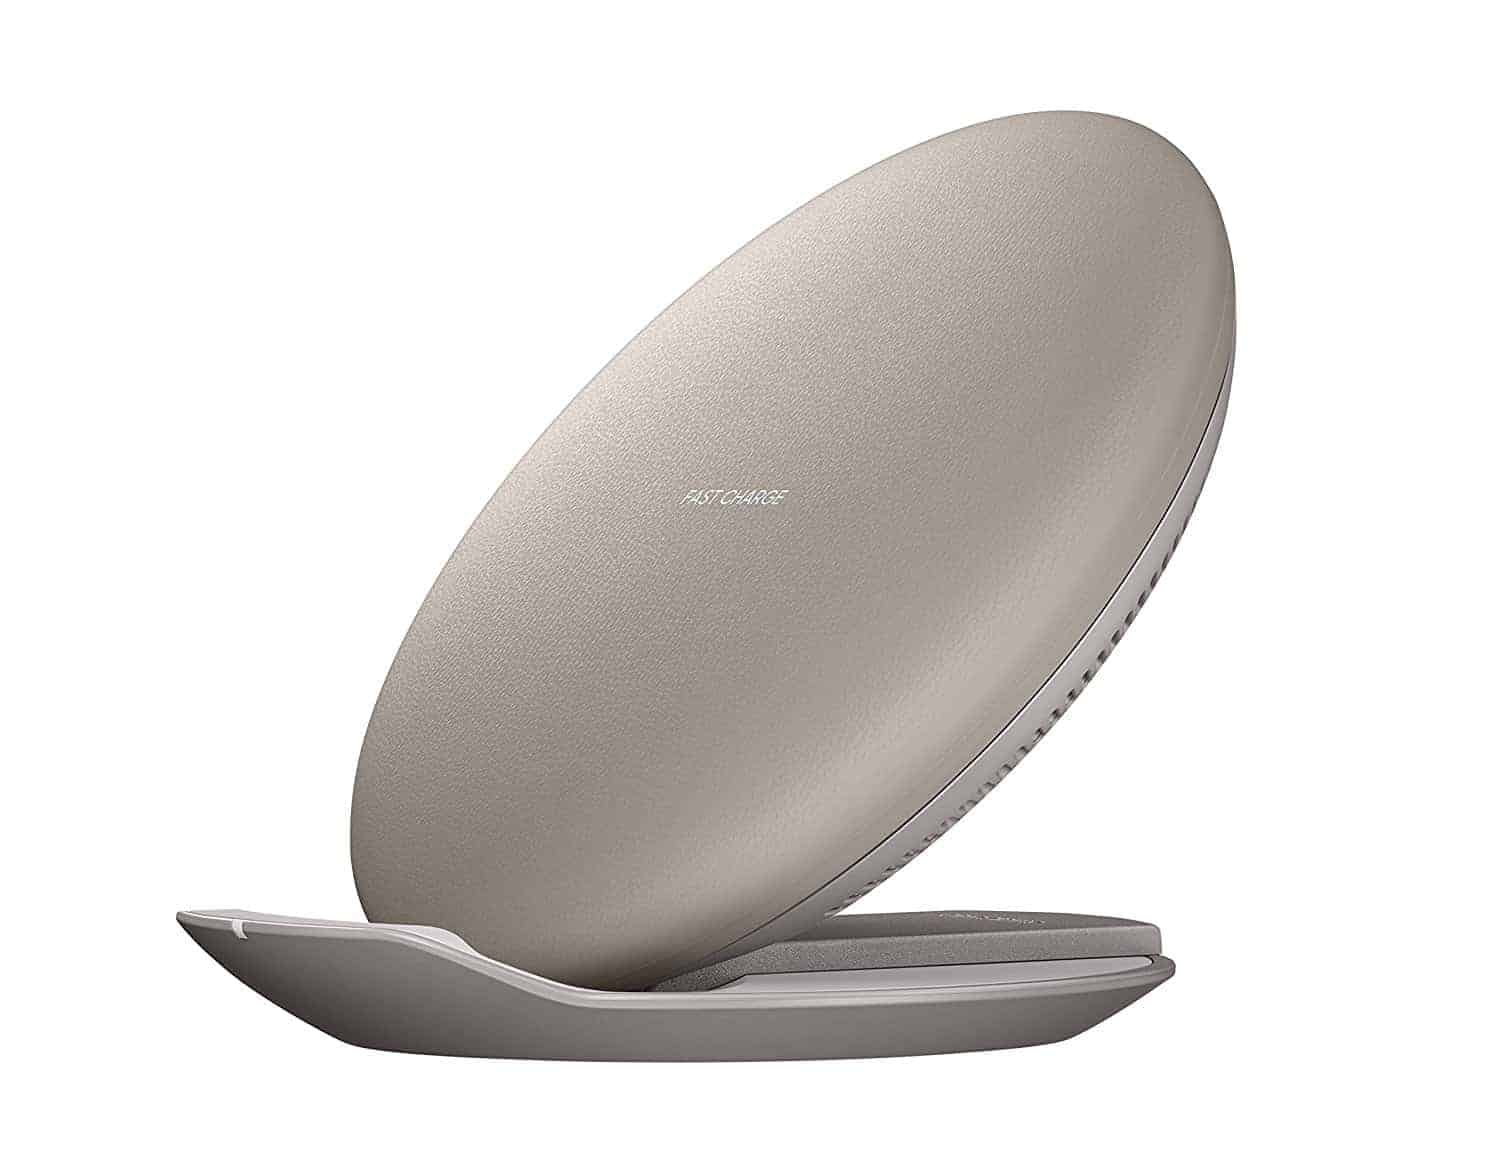 samsung fast wireless charging stand 7